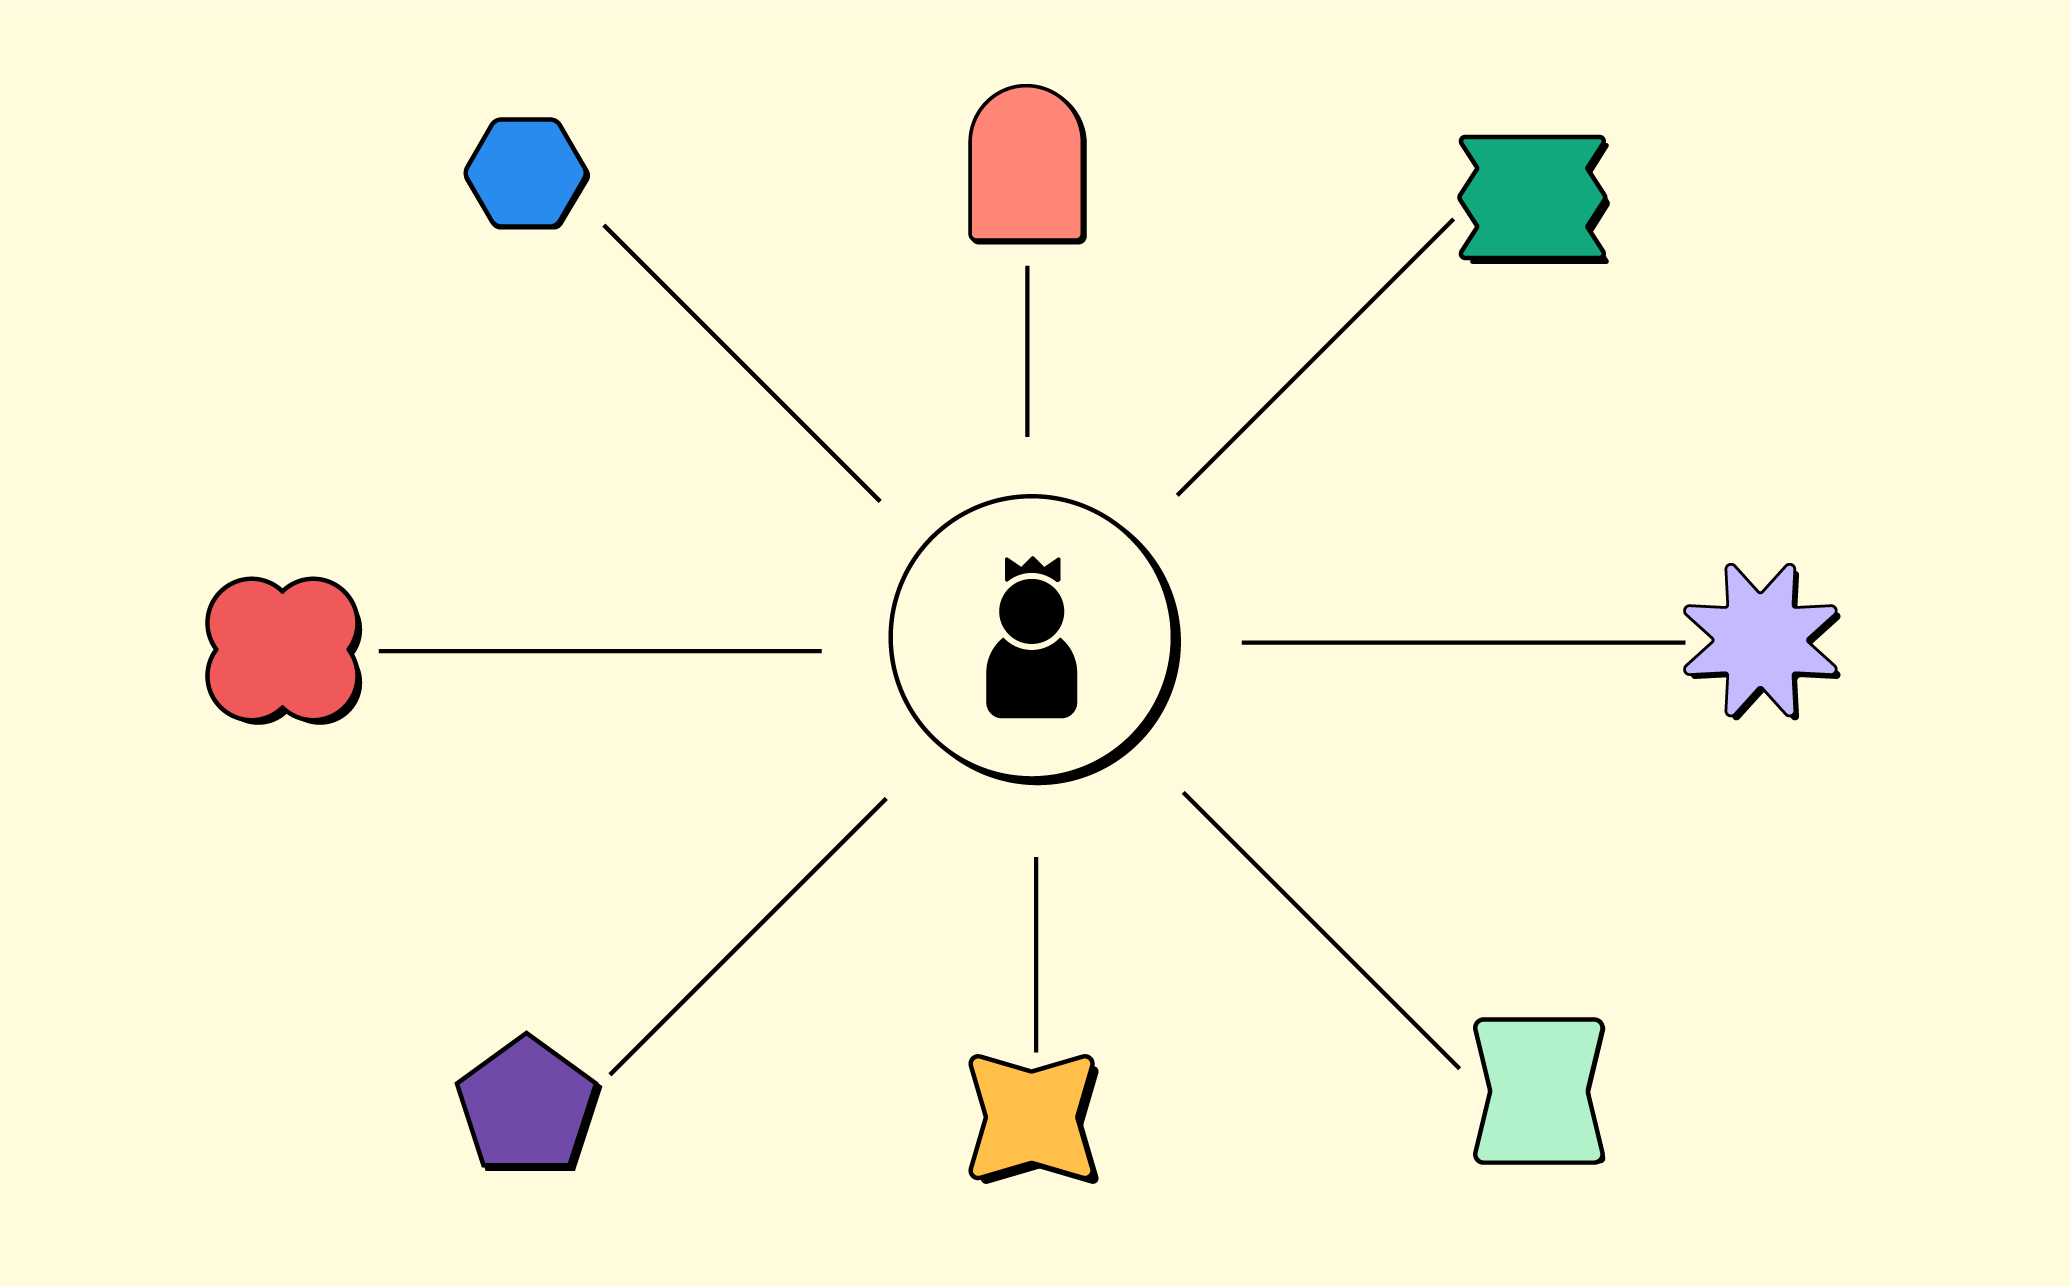 Graphic showing a circle of icons that represent Google admin endpoint tasks, such as finding a device, configuring email, pushing server certificates, and more. BrainStorm, Inc (9/15/2021)